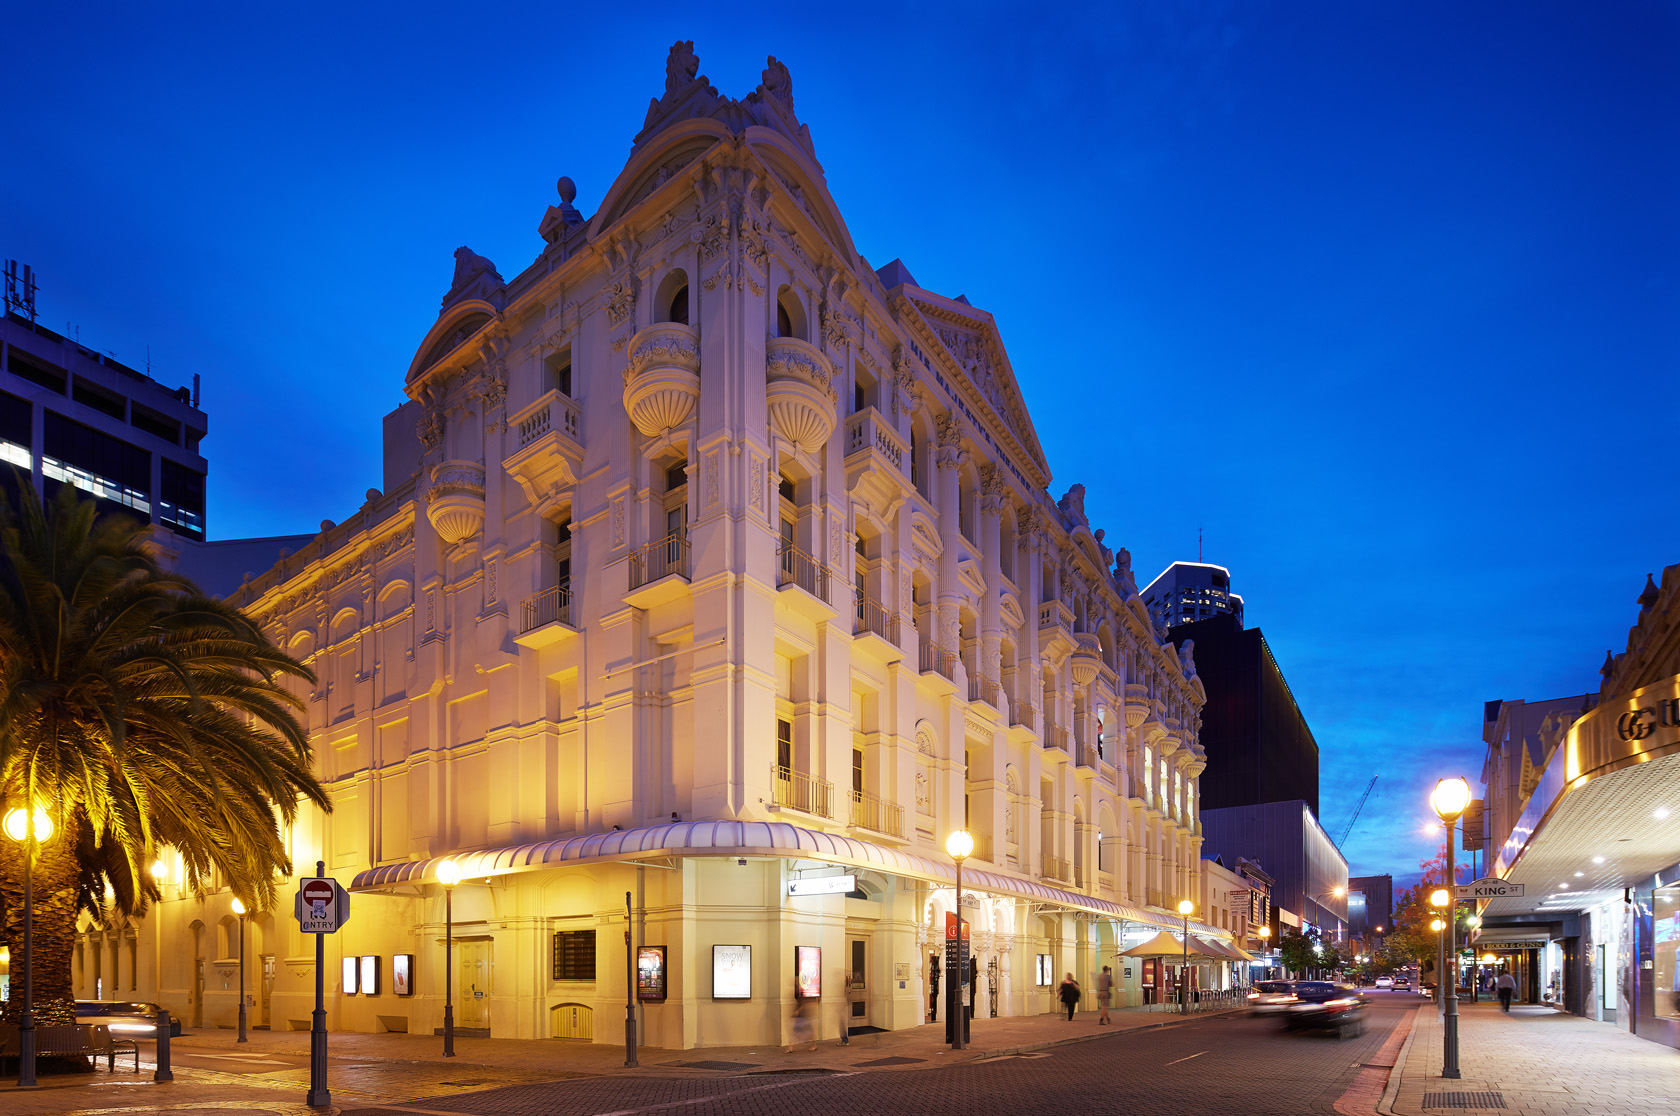 His Majesty's Theatre exterior at night